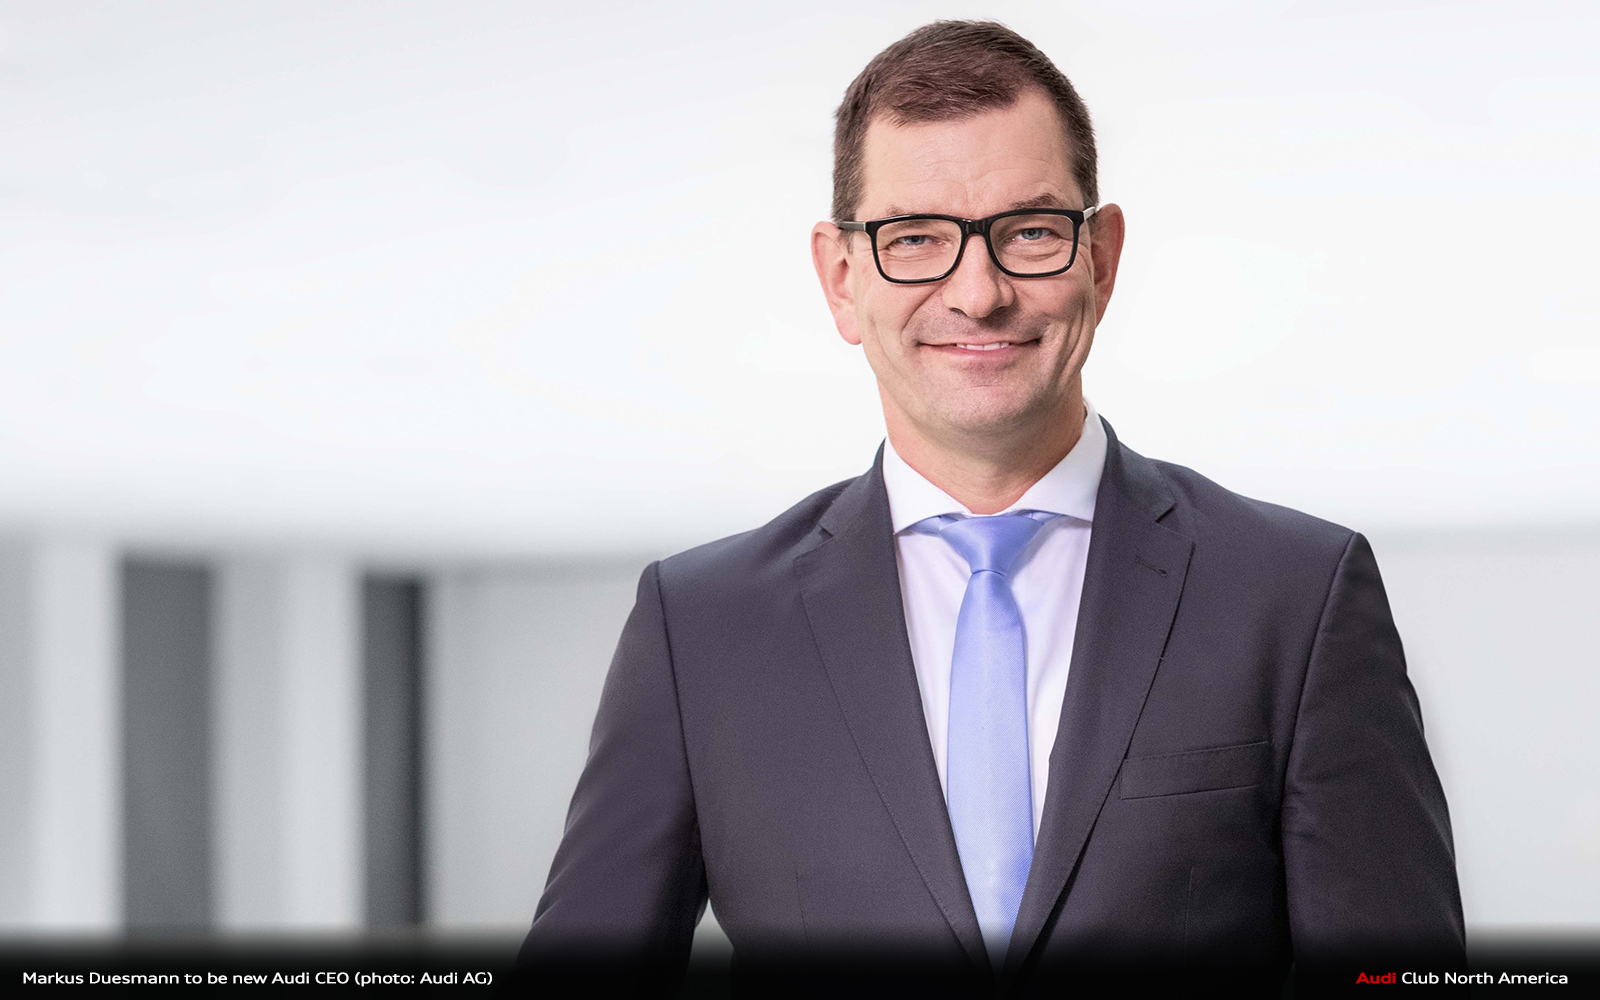 Markus Duesmann to be new Audi CEO